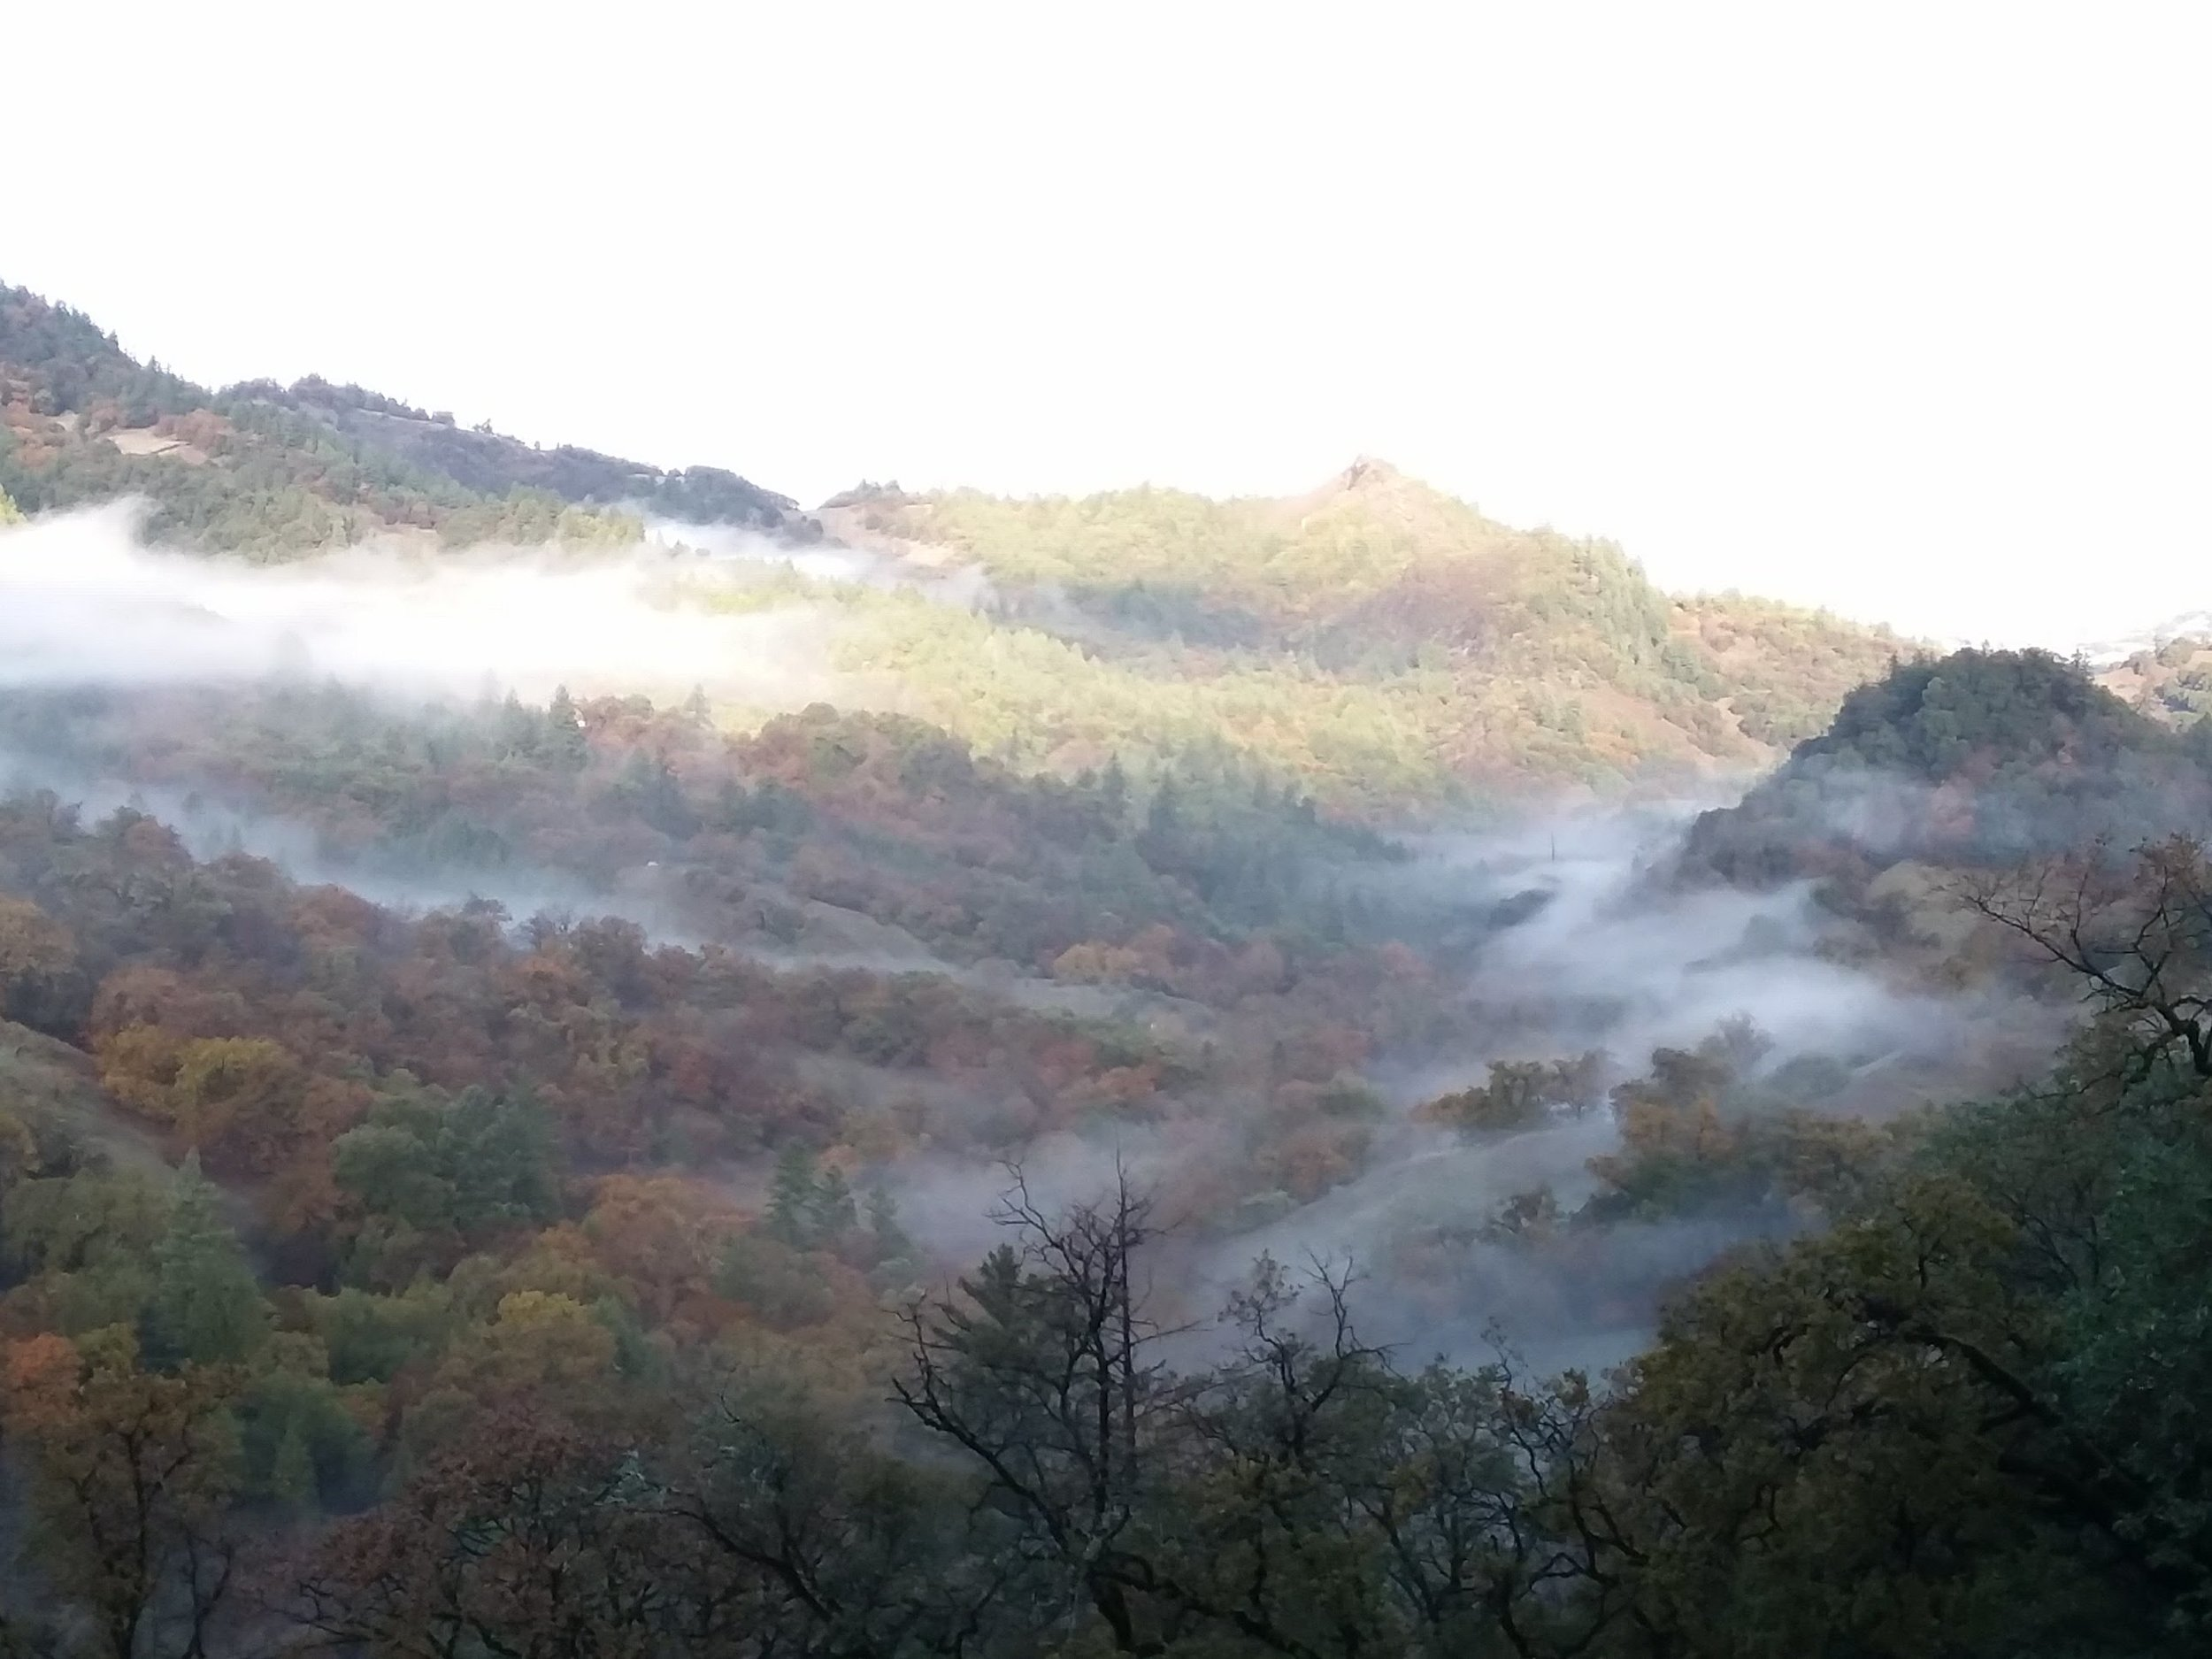 stones throw fog in valley.jpg